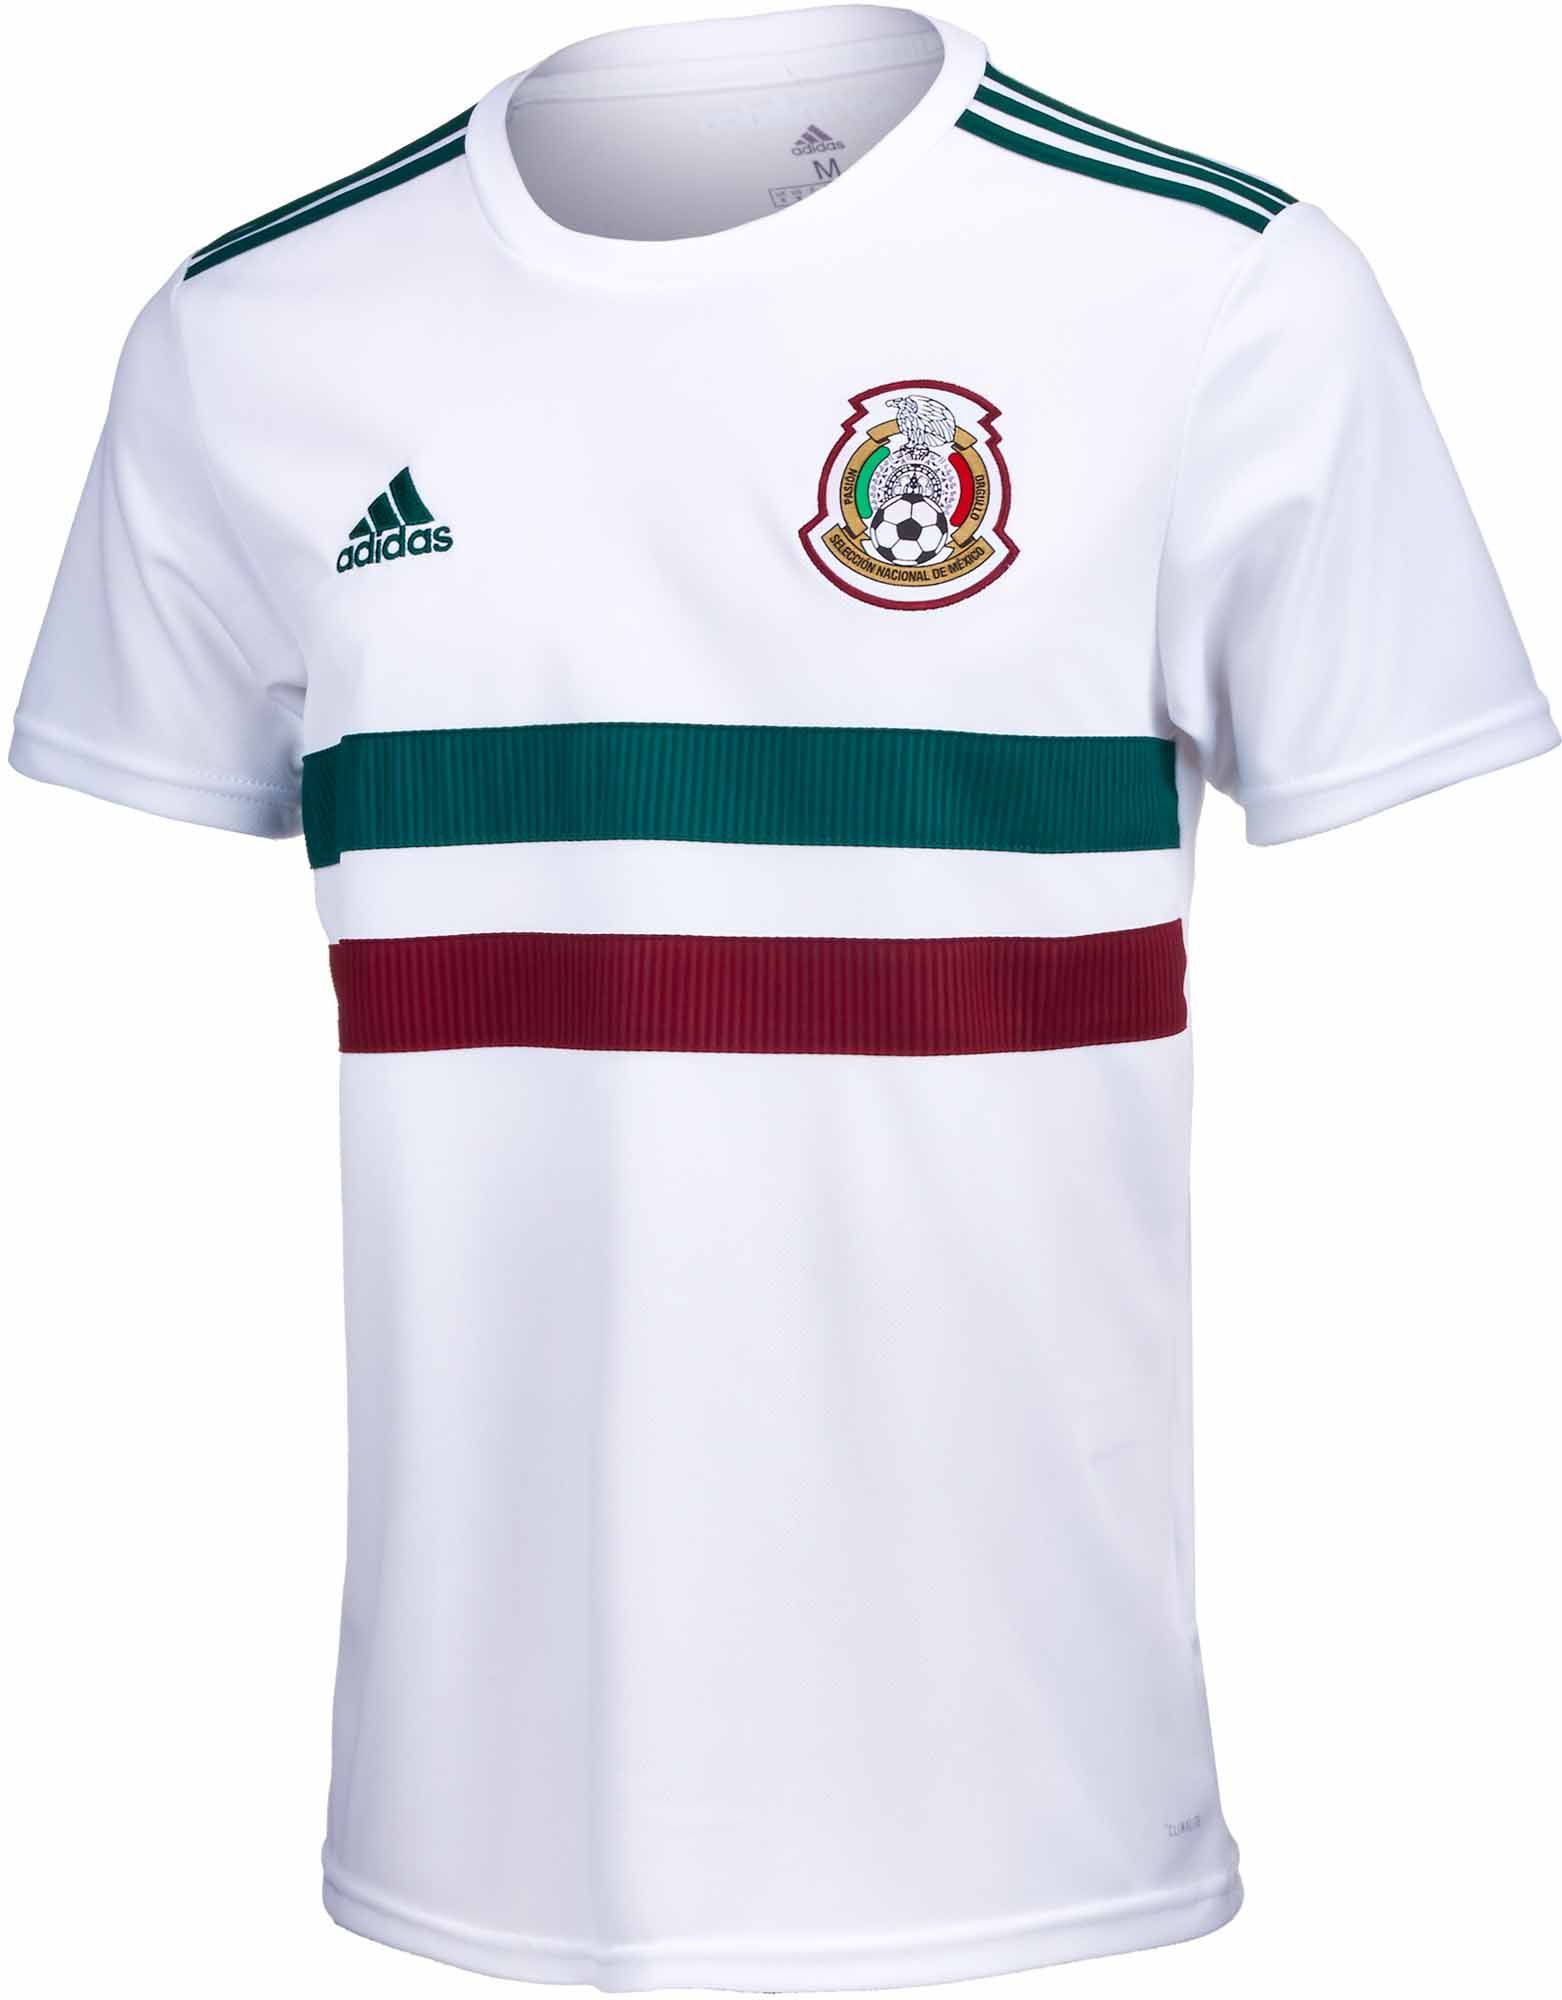 2018 19 adidas Mexico Away Jersey. Buy it from SoccerPro  448bfe0101fc8